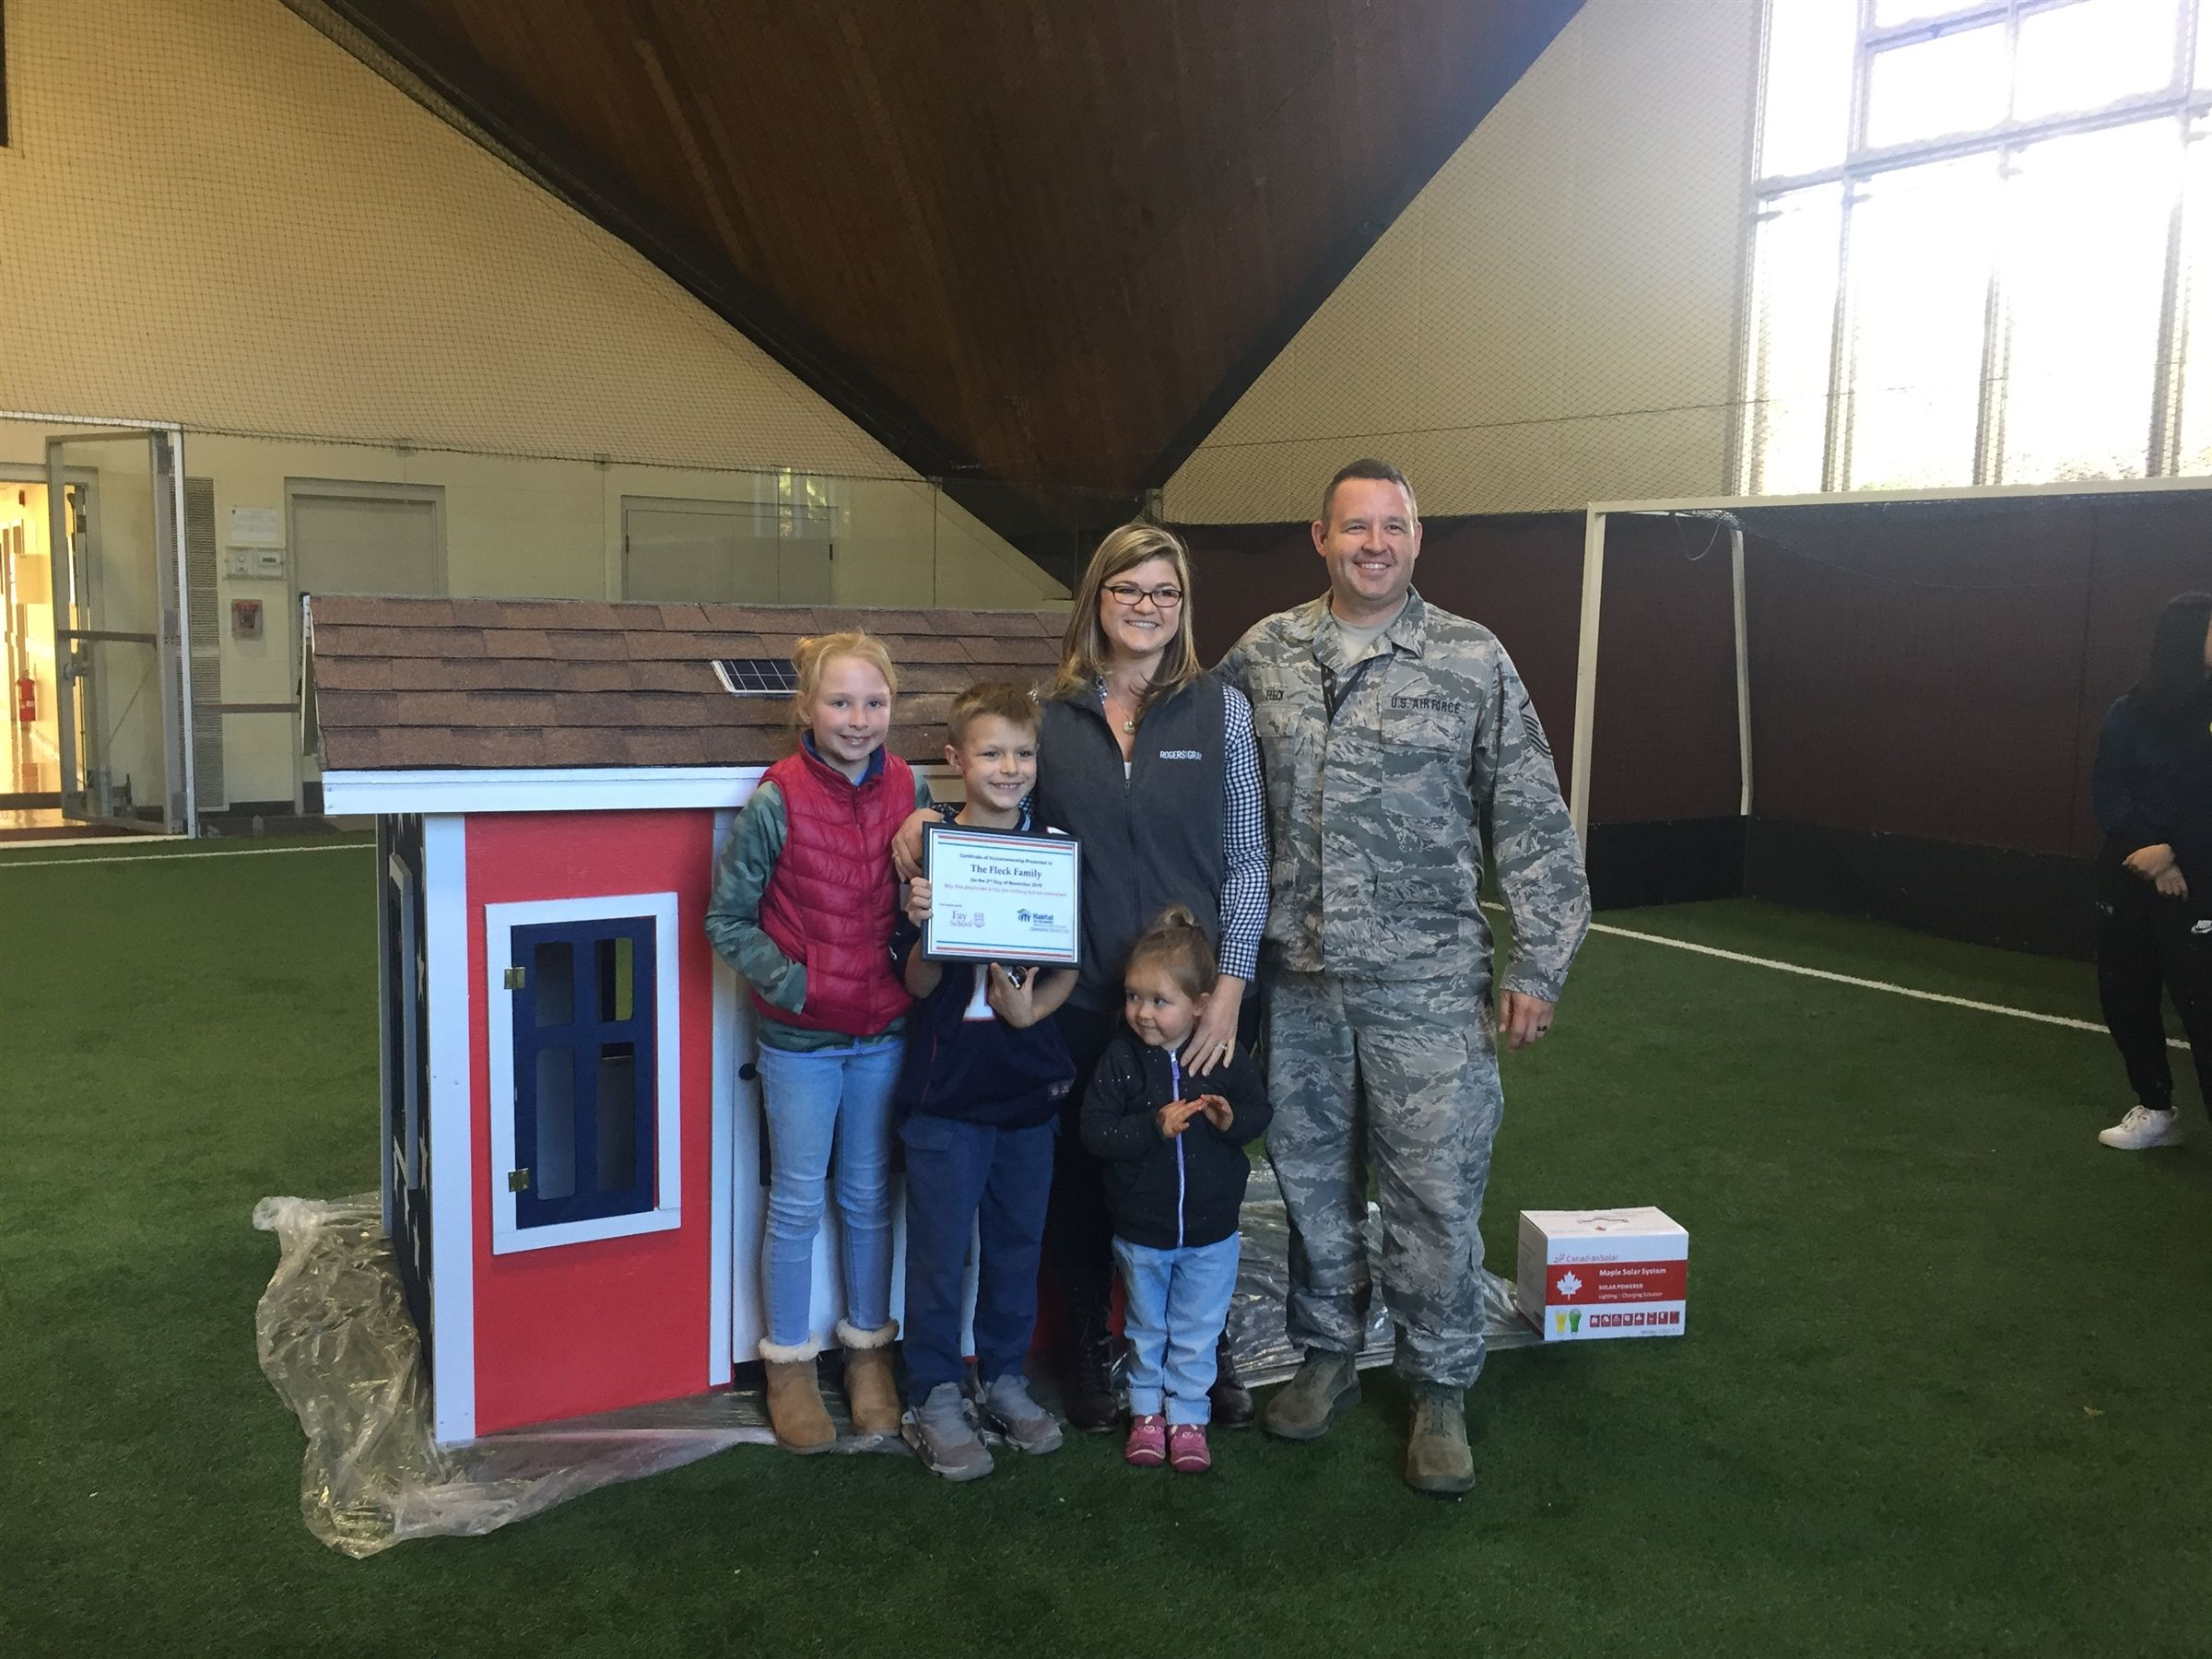 The Fleck Family and the playhouse that Upper School students built for them through Habitat for Humanity's Operation Playhouse.